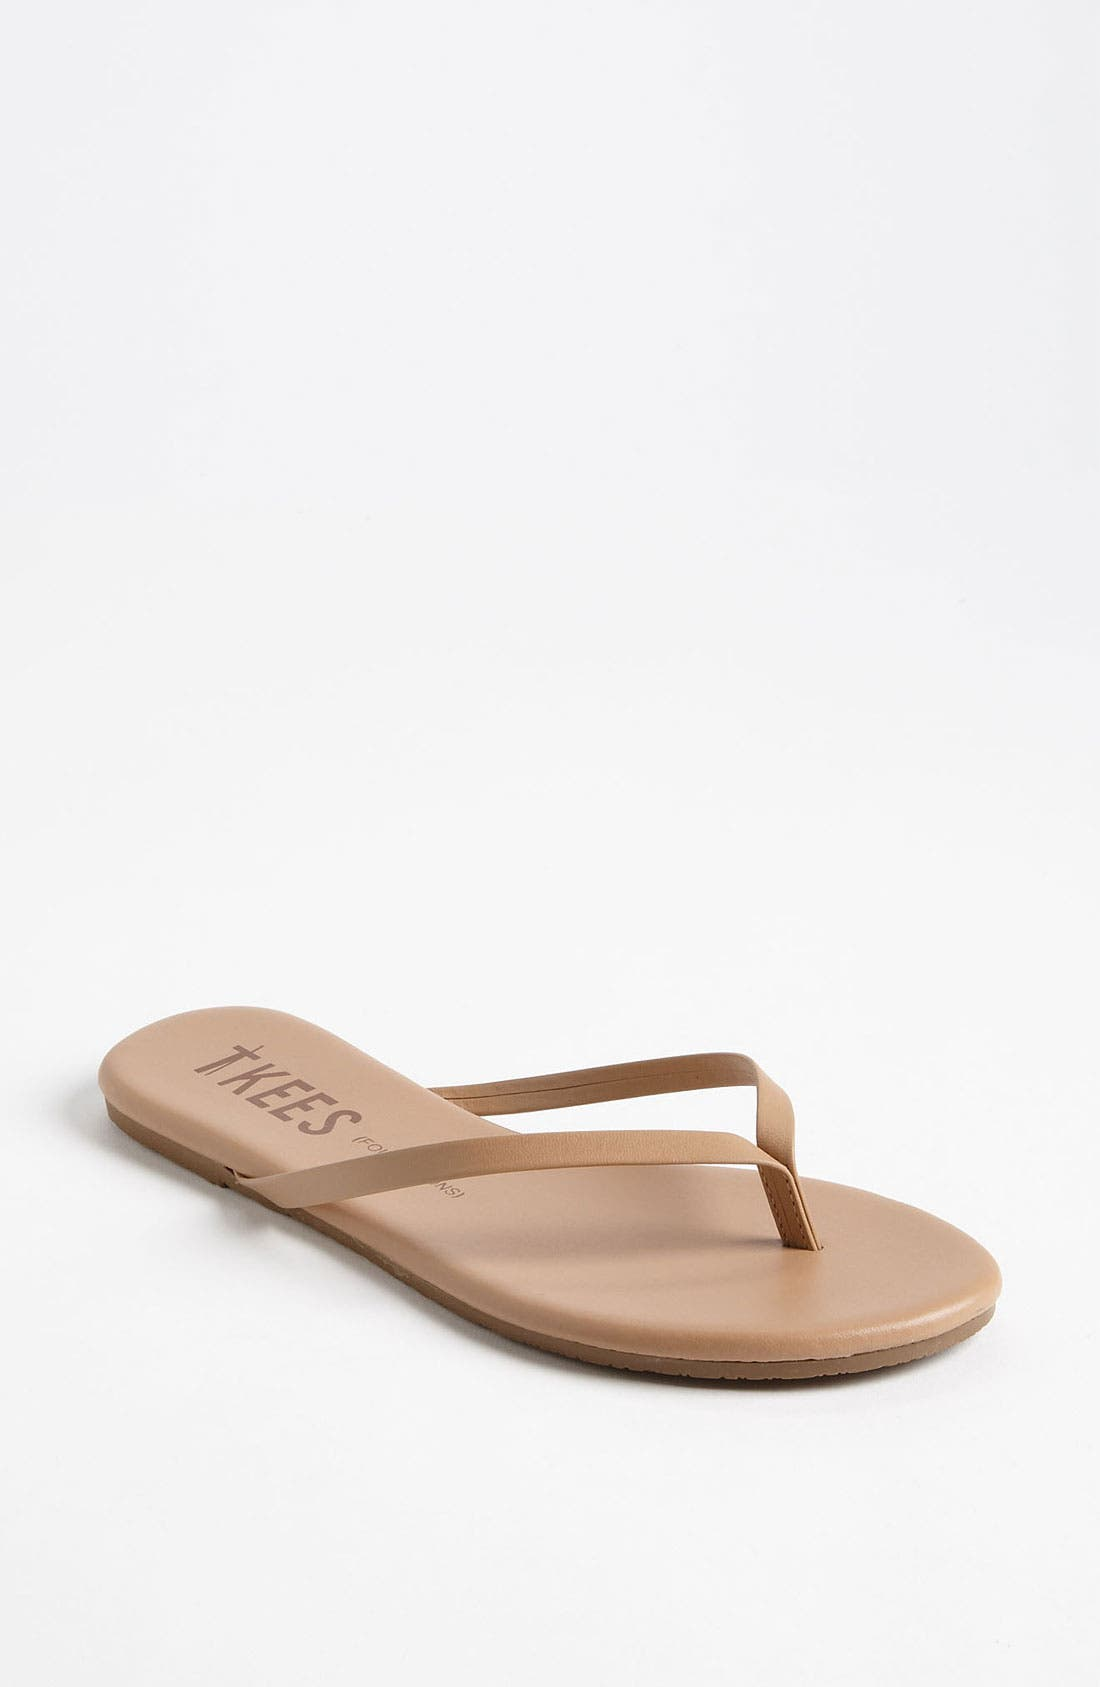 Main Image - TKEES 'Foundations' Flip Flop